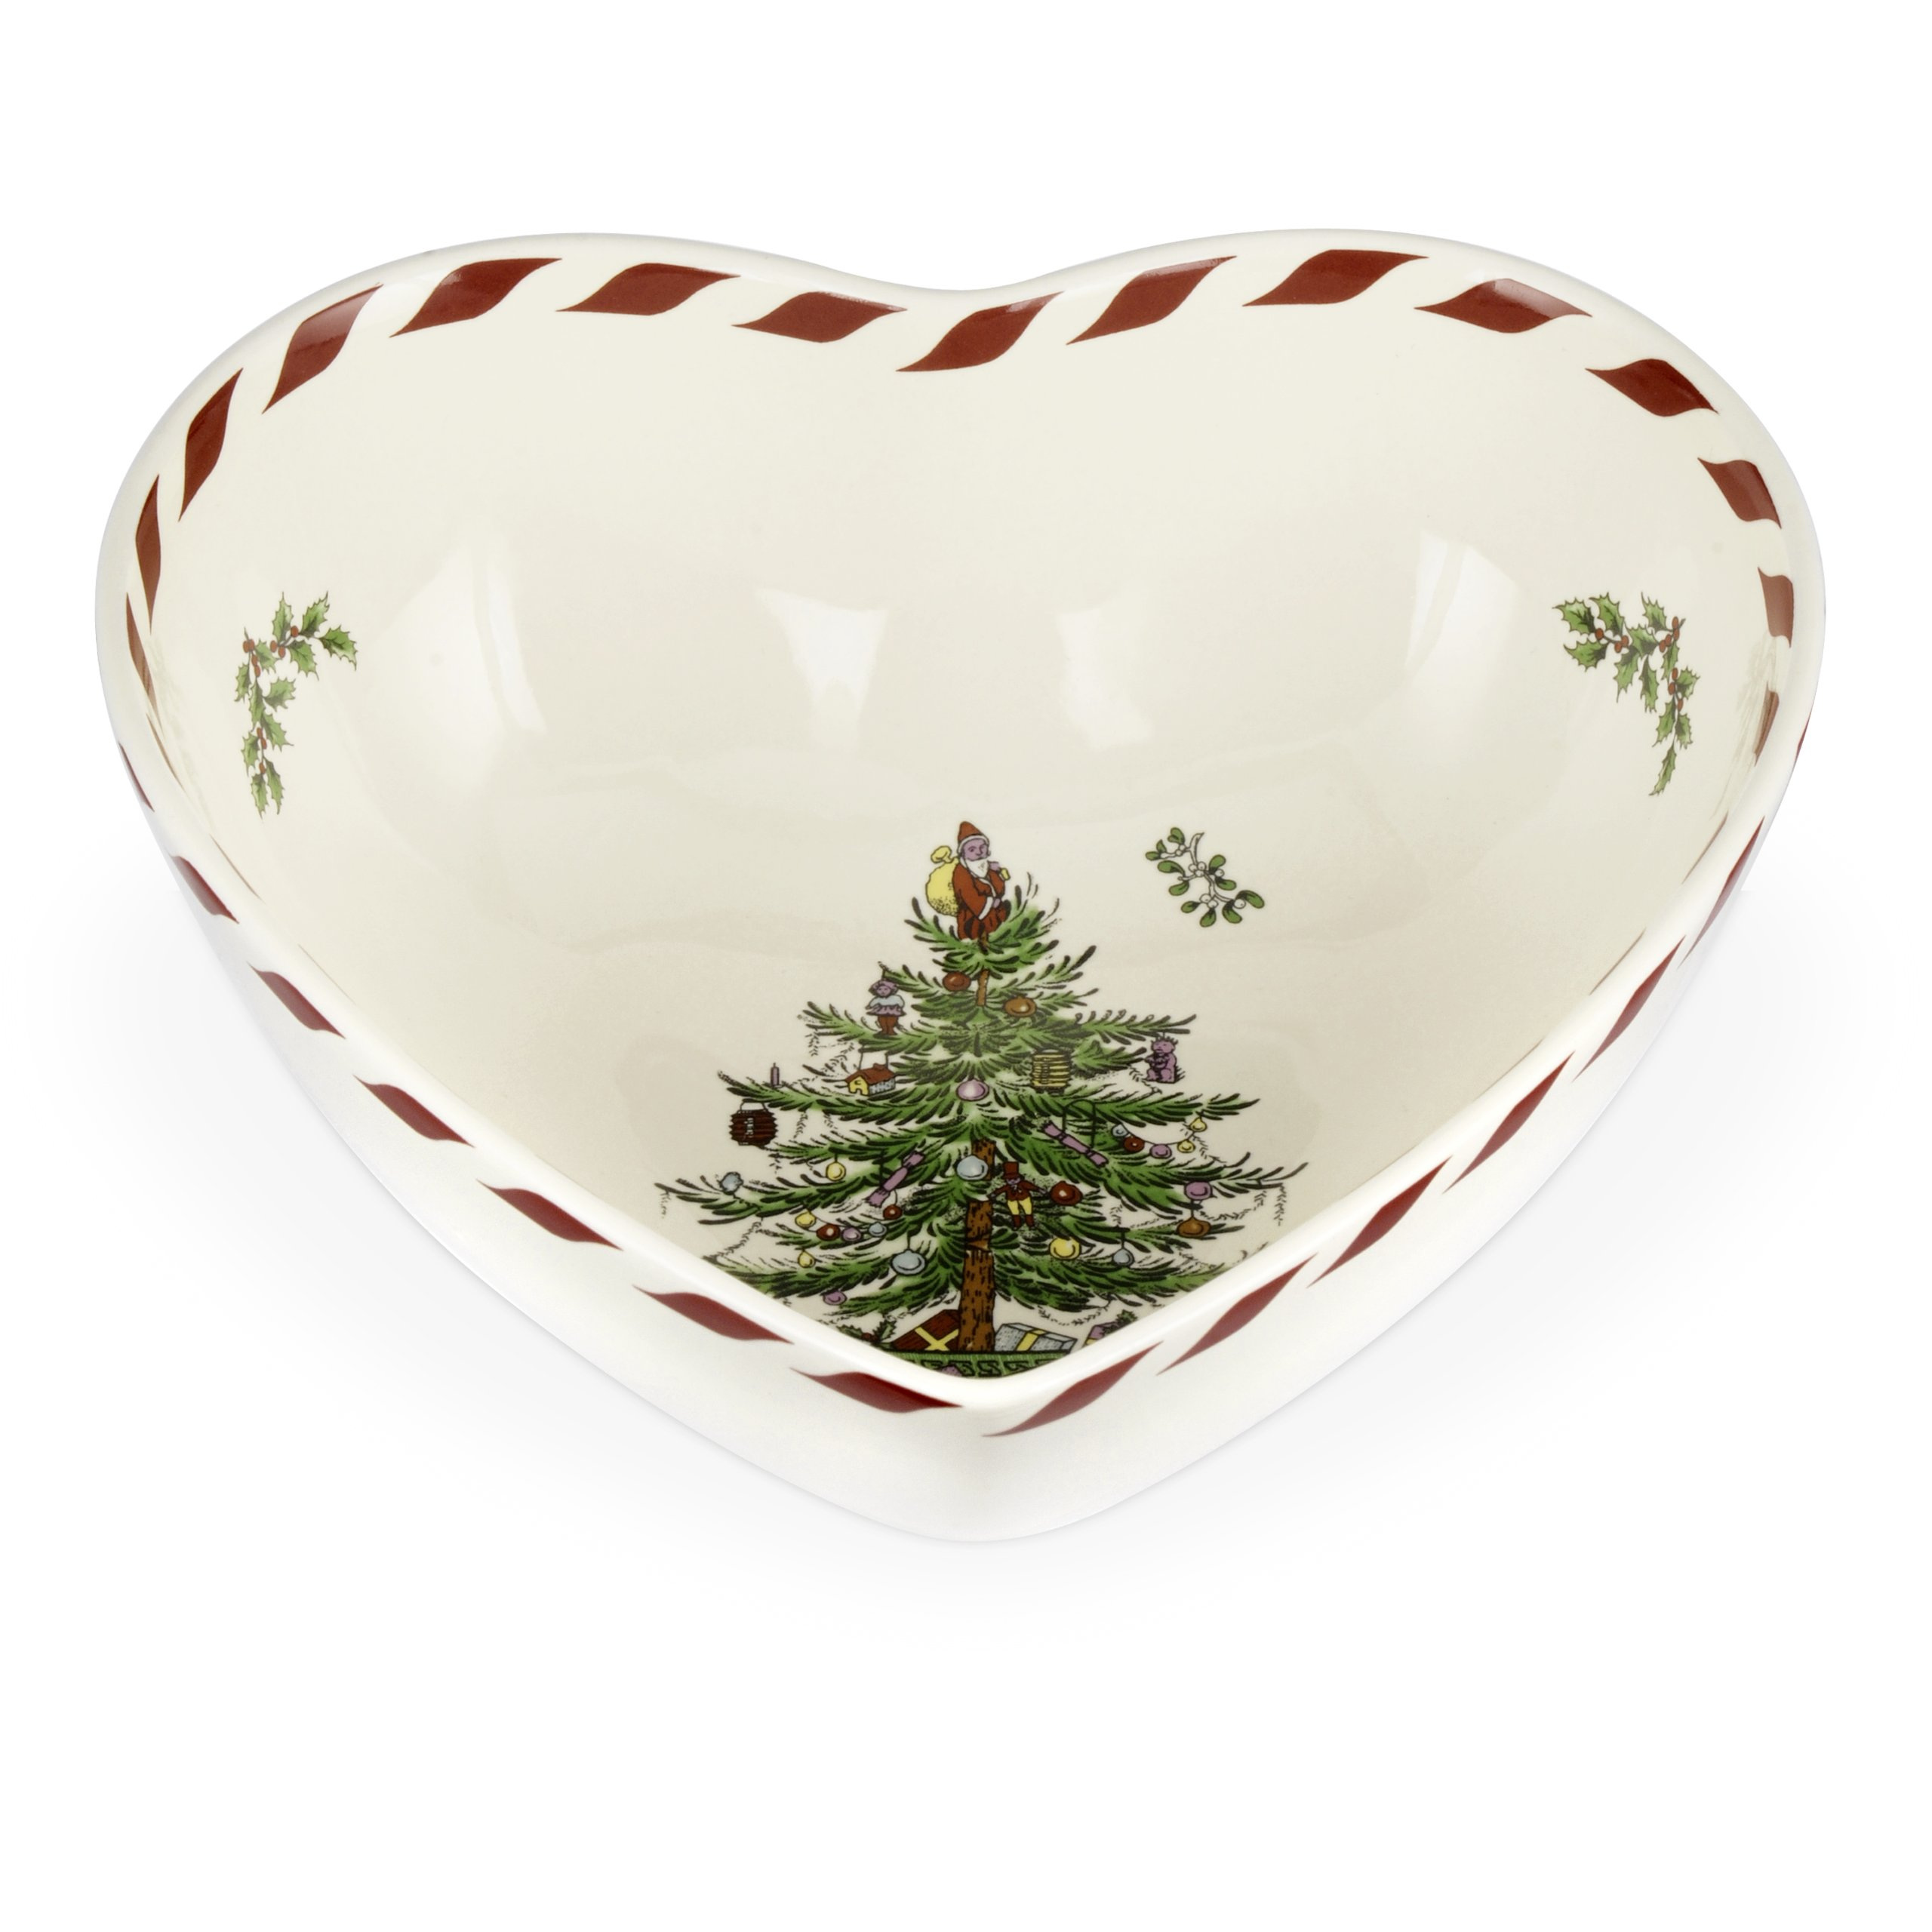 Spode Christmas Tree Peppermint Heart Bowl, 8-Inch